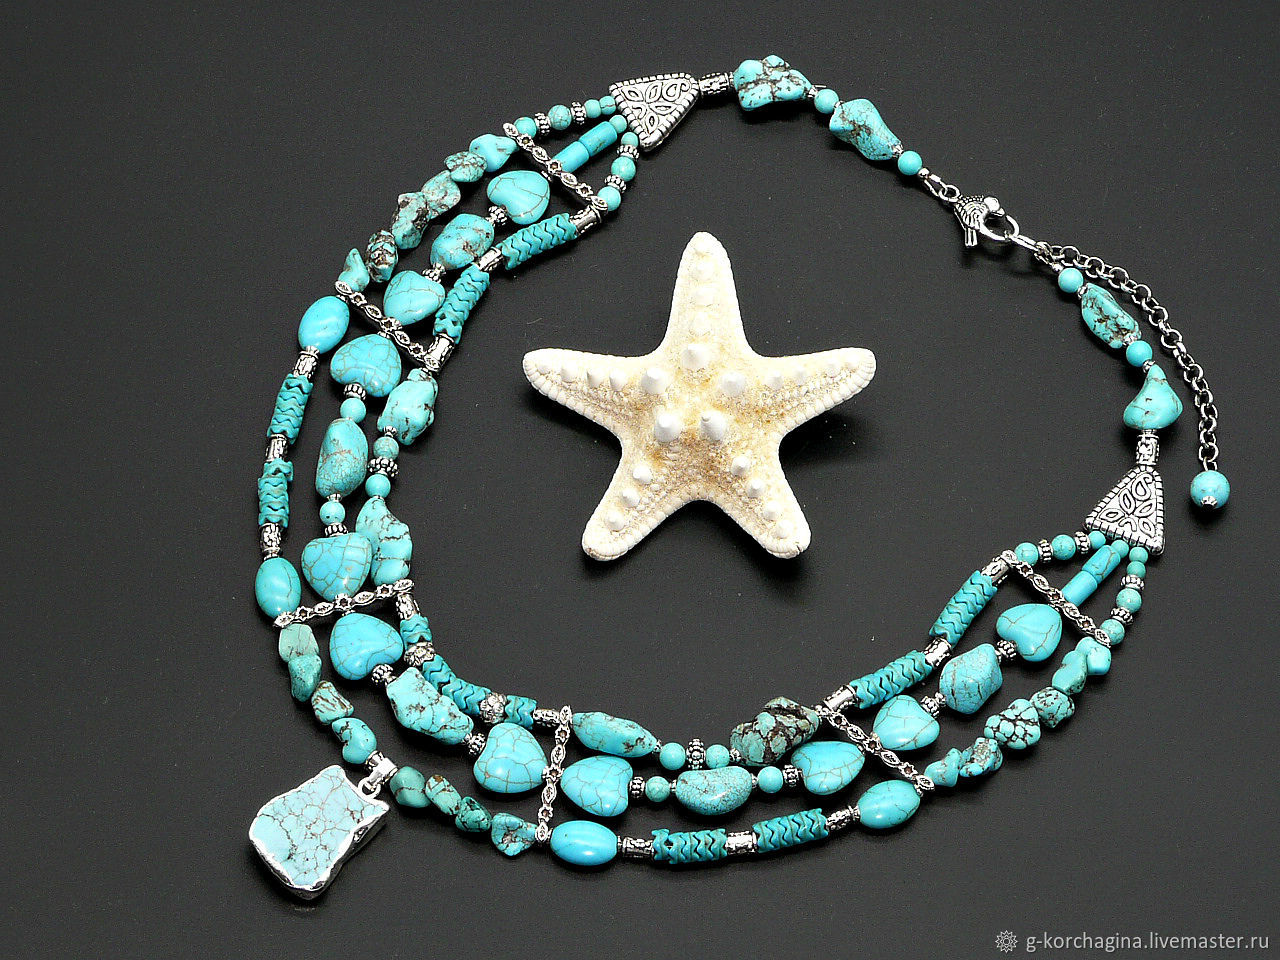 Three-row necklace the beads with a pendant, 'Turquoise delight', Necklace, Voronezh,  Фото №1